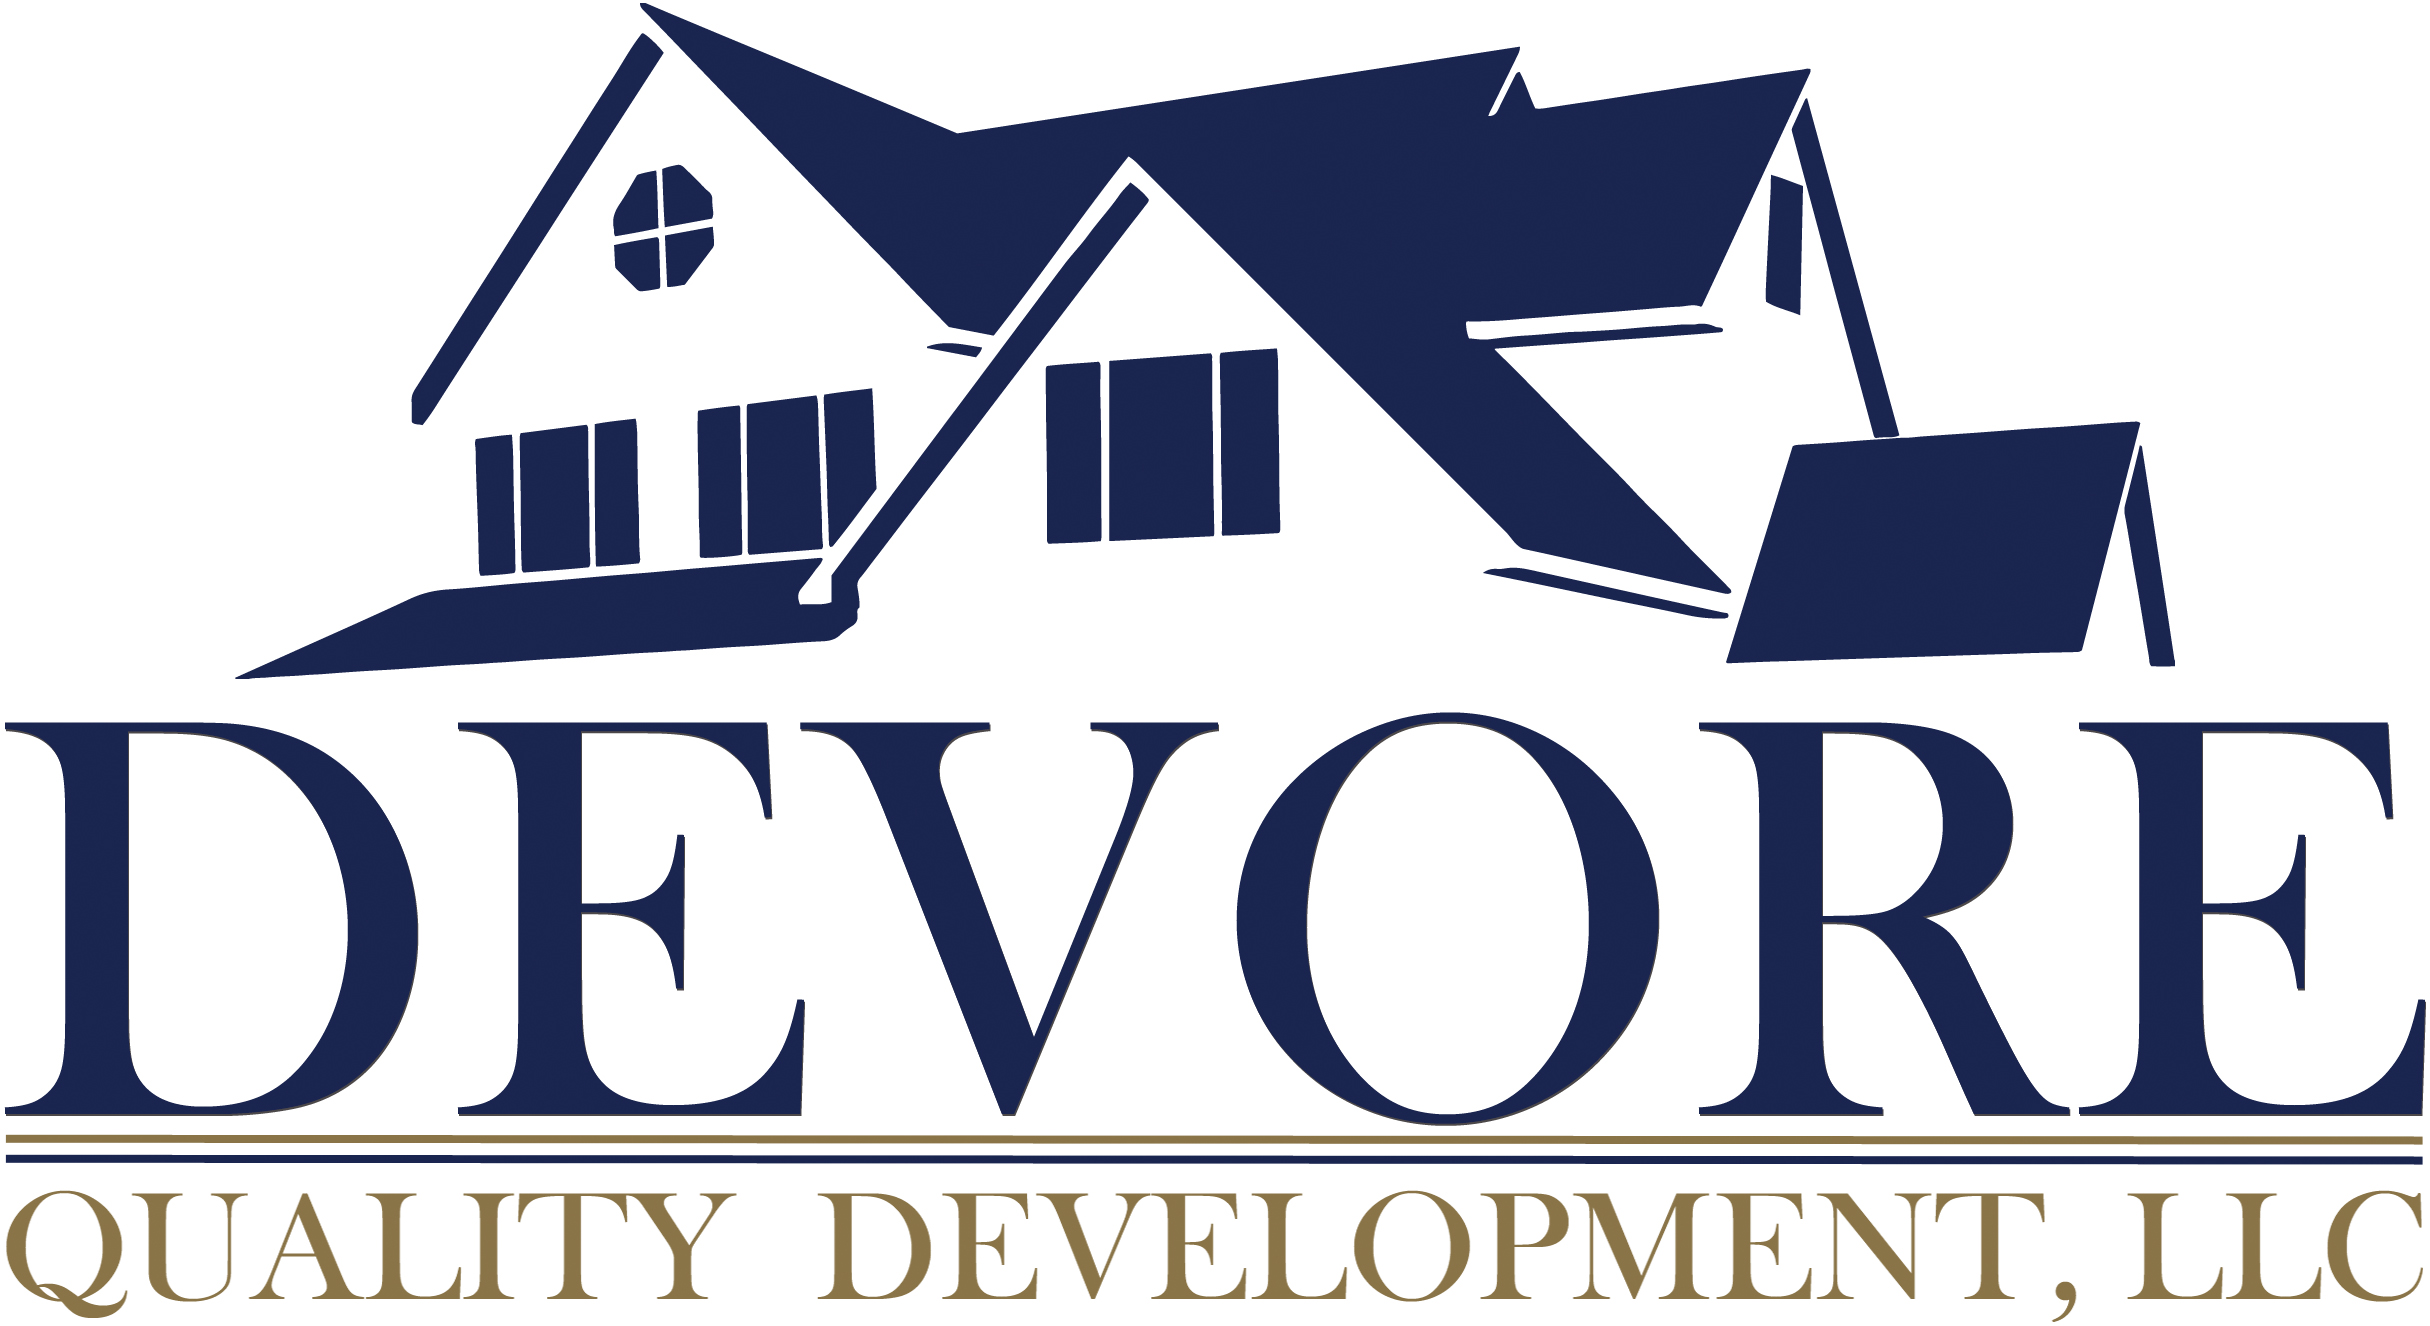 DEVORE QUALITY DEVELOPMENT, LLC LOGO